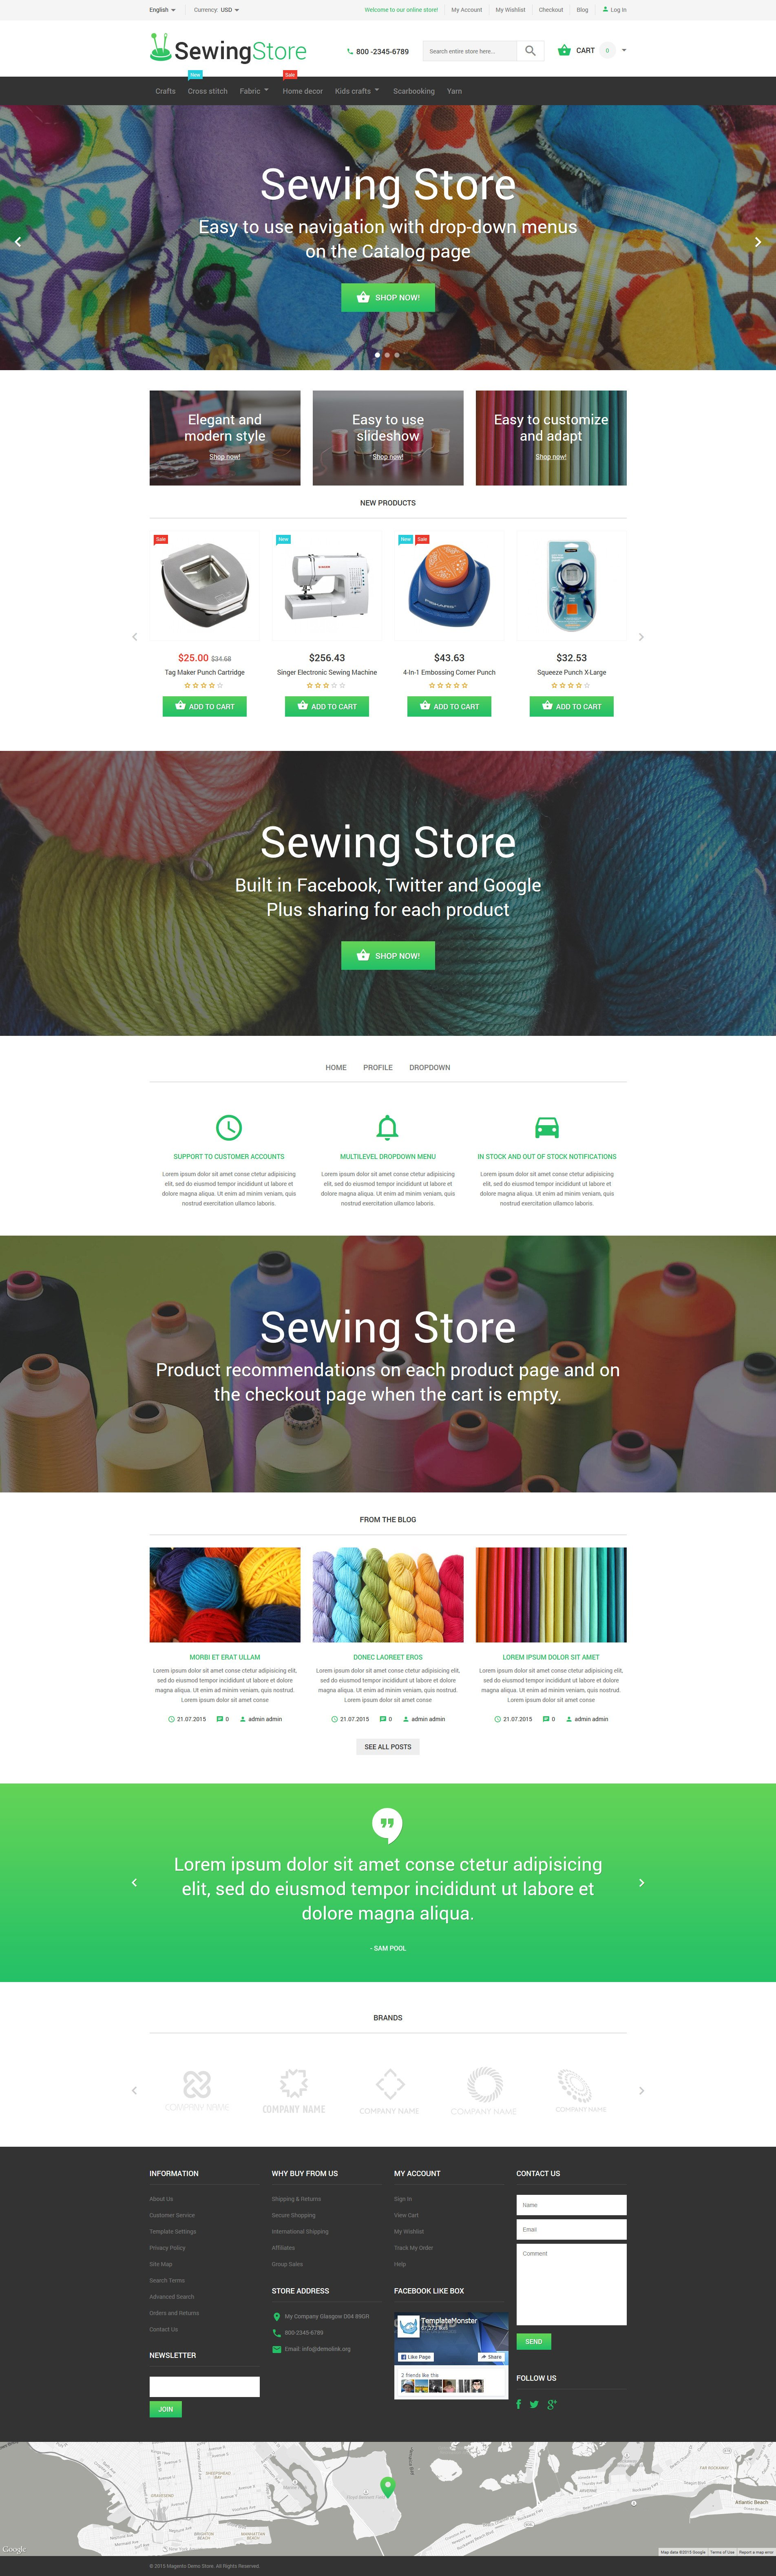 Responsive Sewing Store Magento #55176